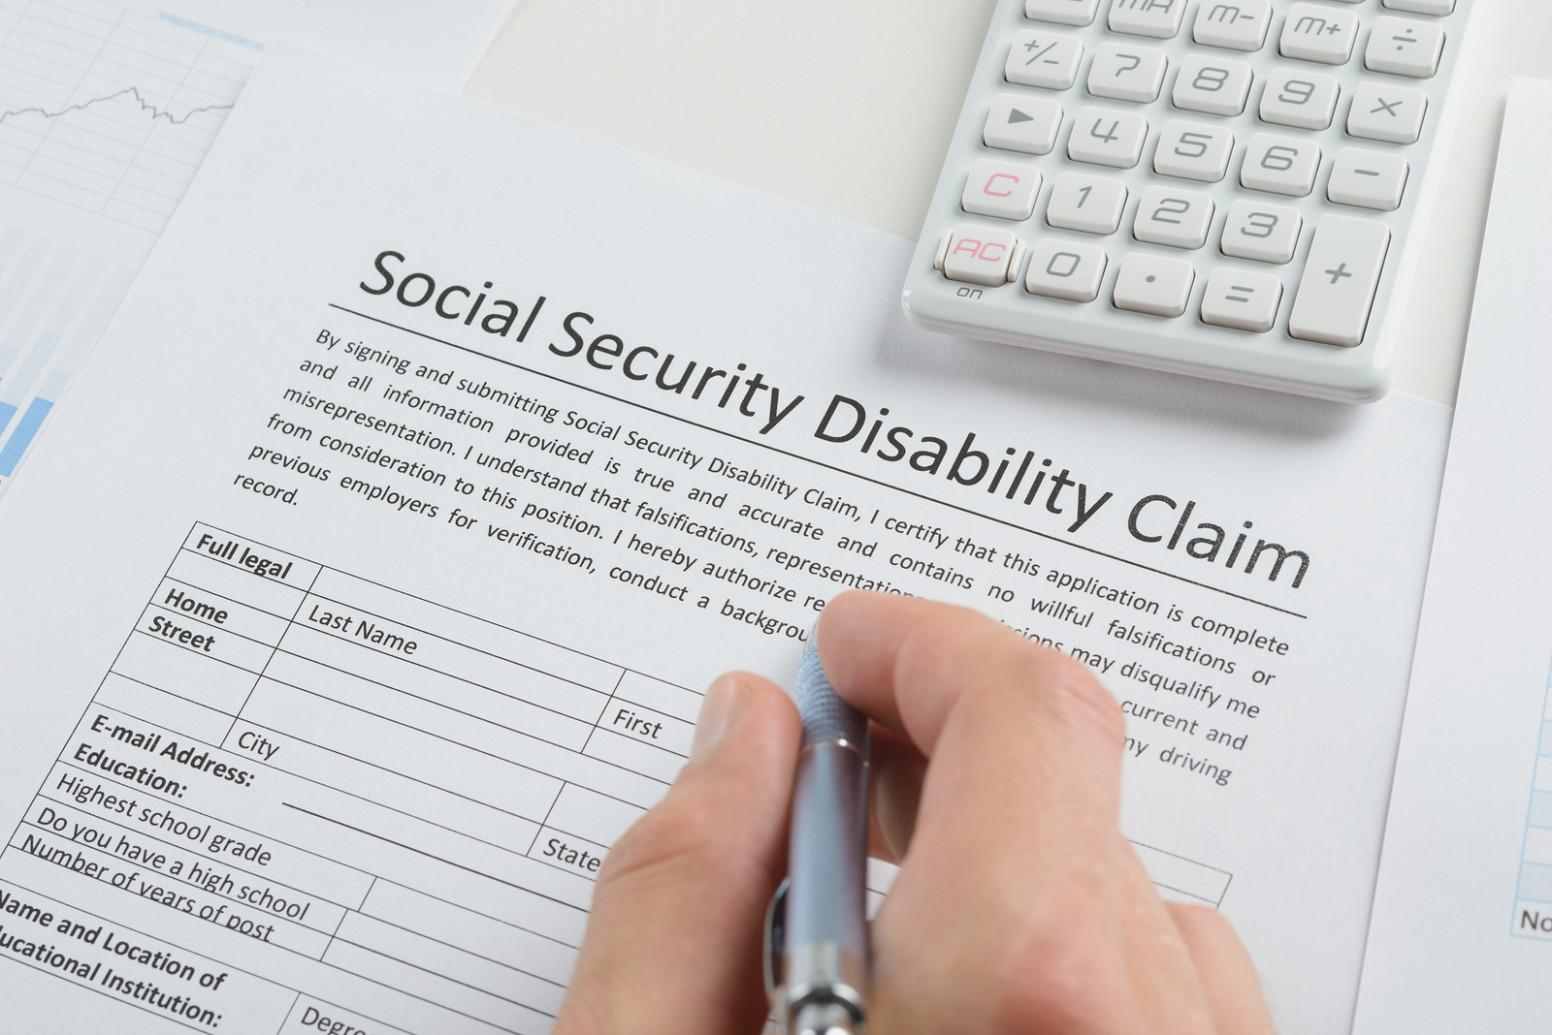 Social Security Disability Application Form Texas